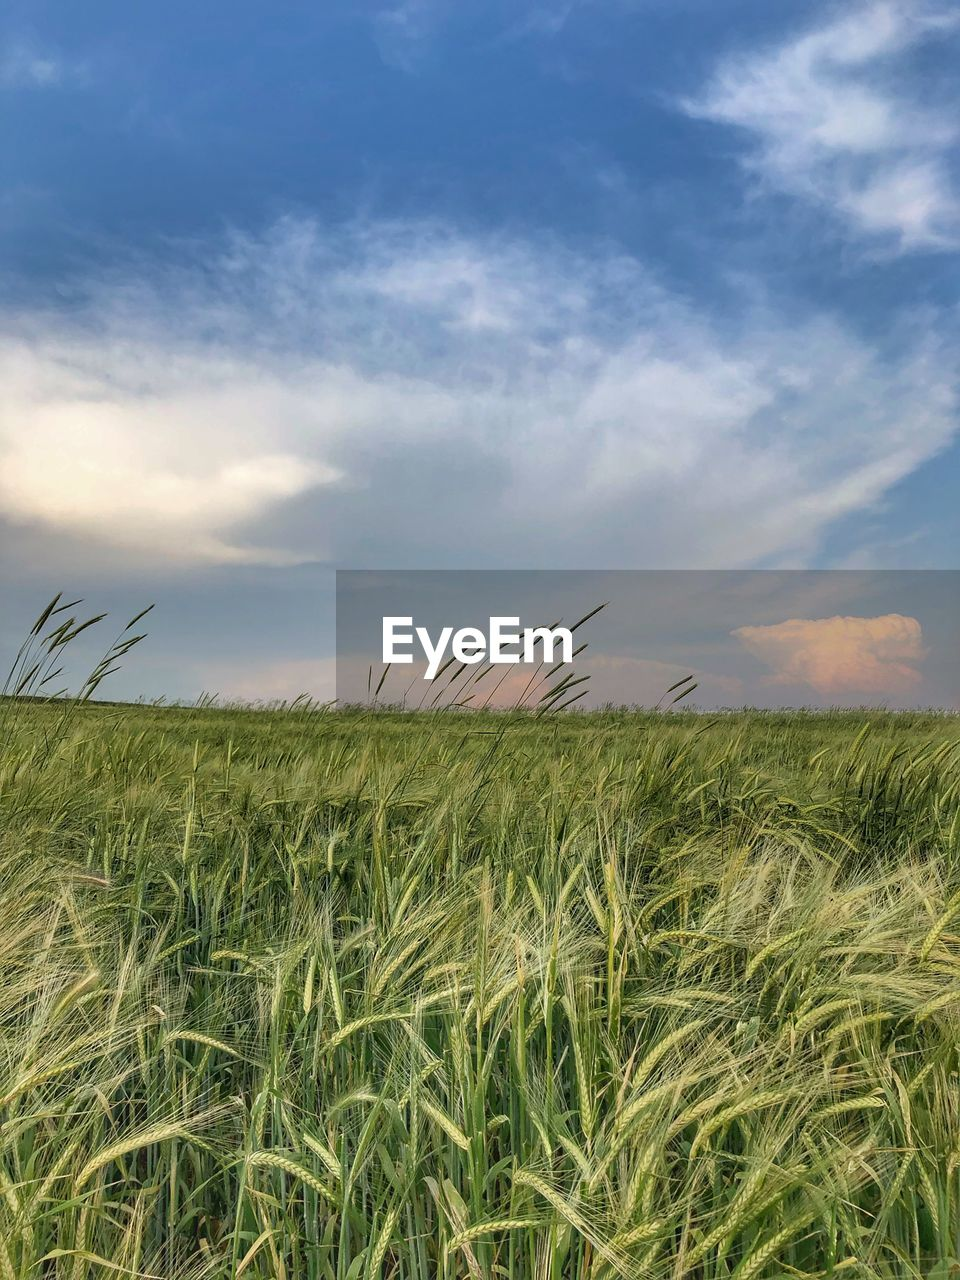 sky, field, cloud - sky, land, landscape, growth, agriculture, plant, tranquility, crop, beauty in nature, tranquil scene, scenics - nature, environment, cereal plant, rural scene, nature, farm, day, no people, outdoors, plantation, stalk